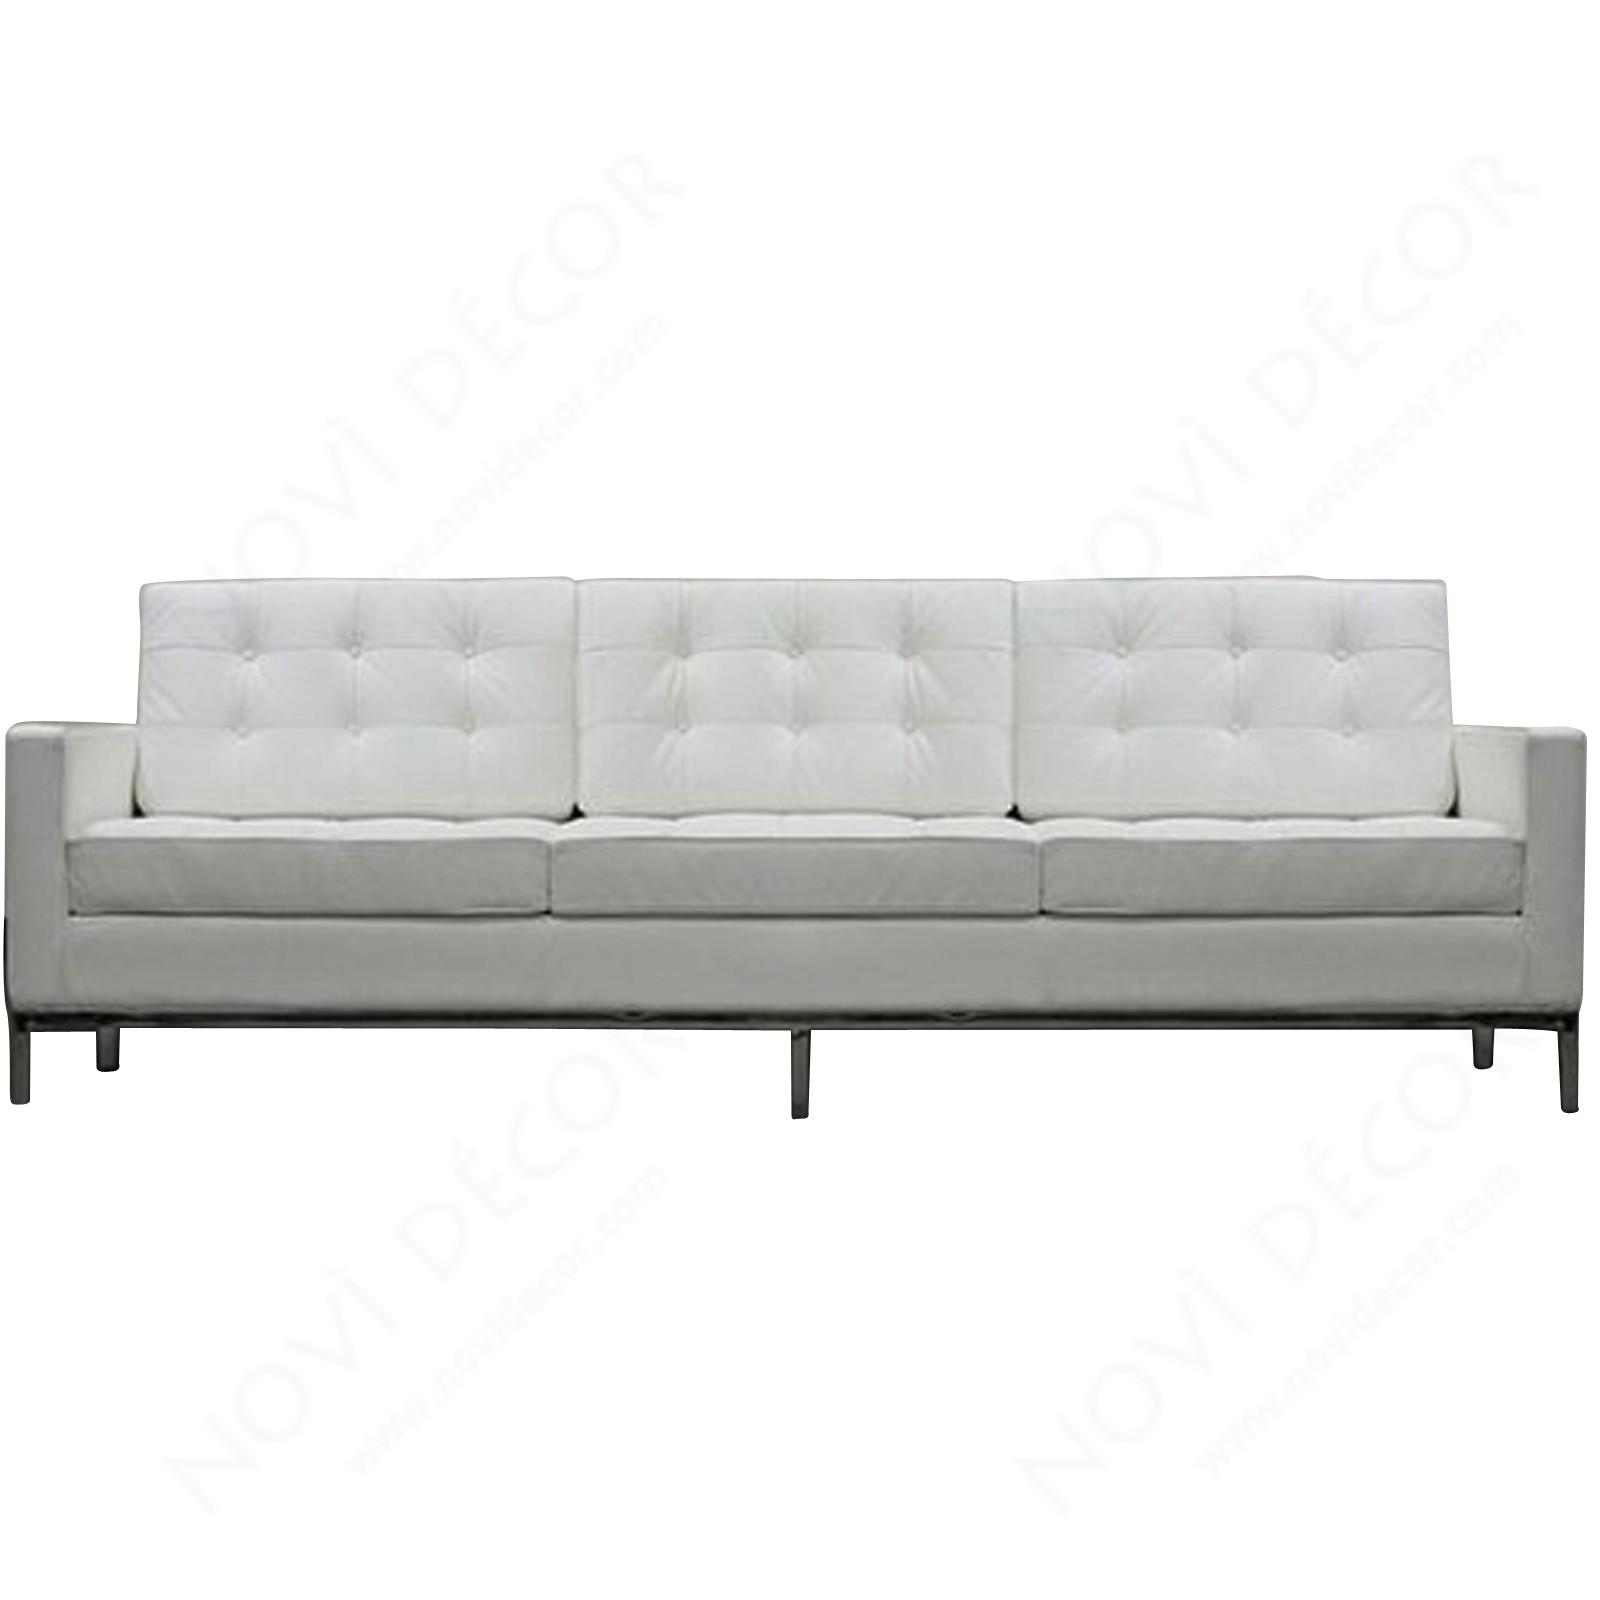 Florence Style Sofa (Multiple Colors) | Designer Reproduction Intended For Florence Large Sofas (View 3 of 20)